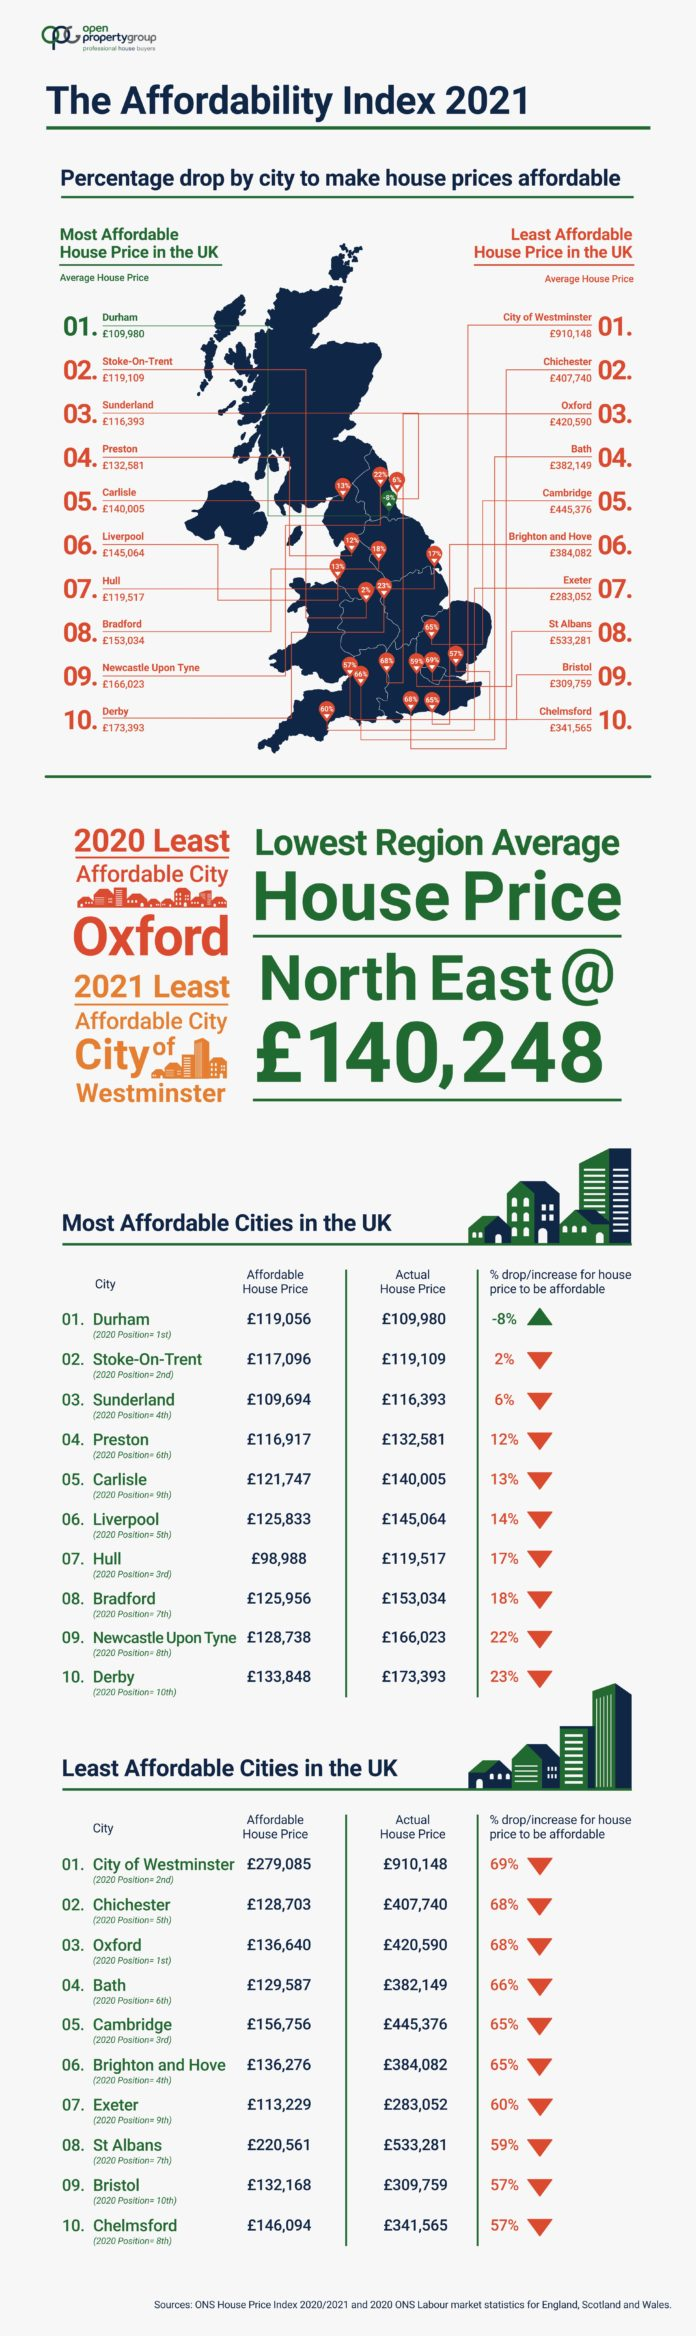 Durham Considered The UK's Most Affordable City To Buy A House In 2021